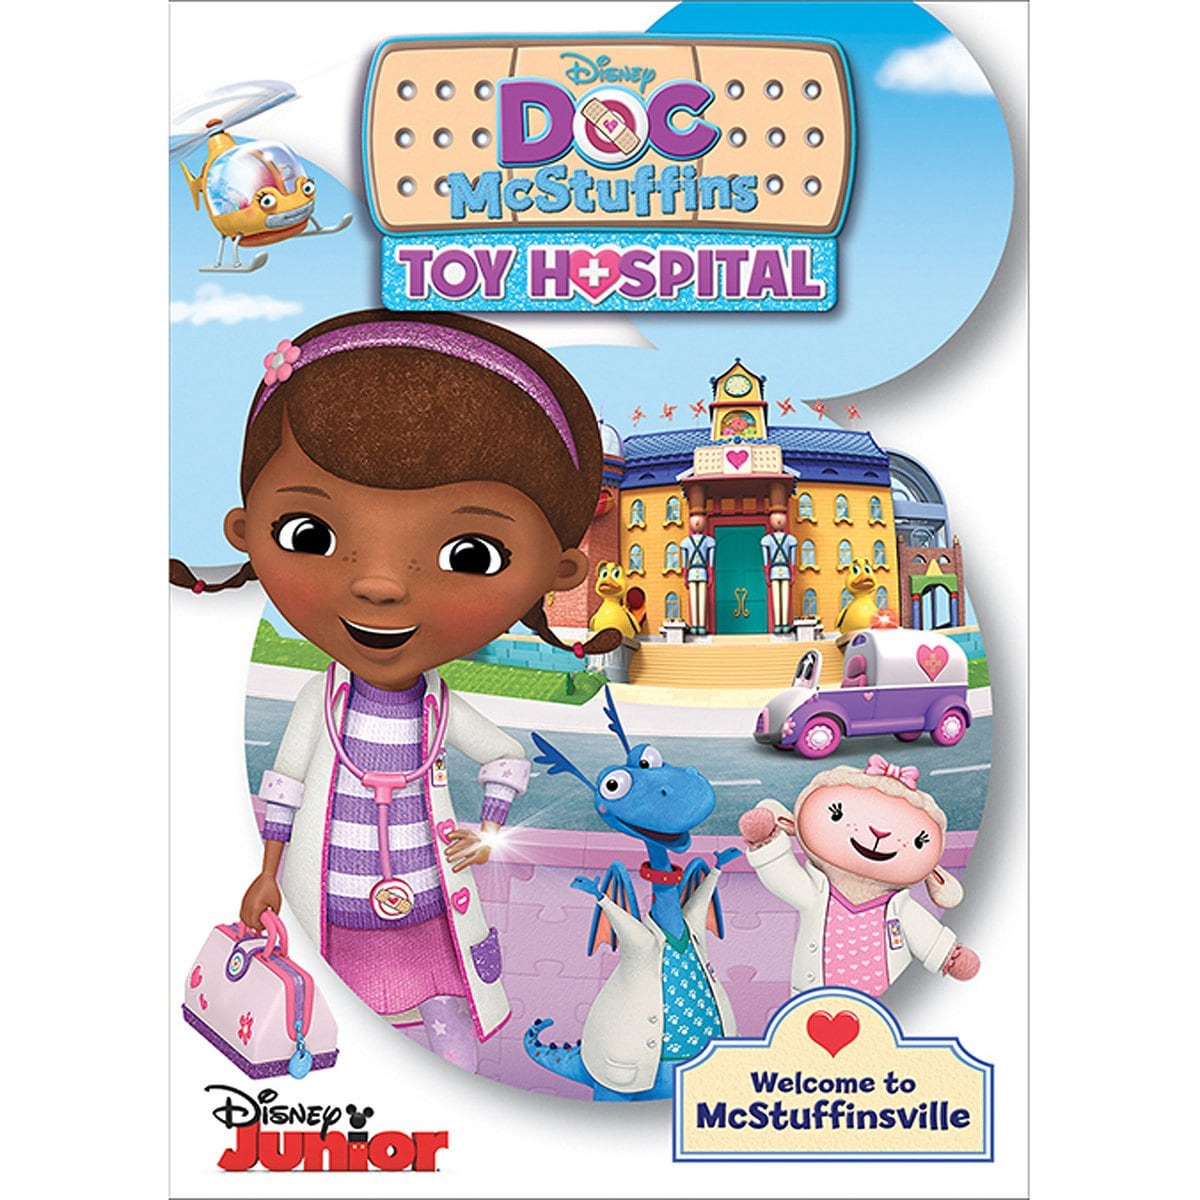 cb73400f68a Product Image of Doc McStuffins Toy Hospital DVD   1